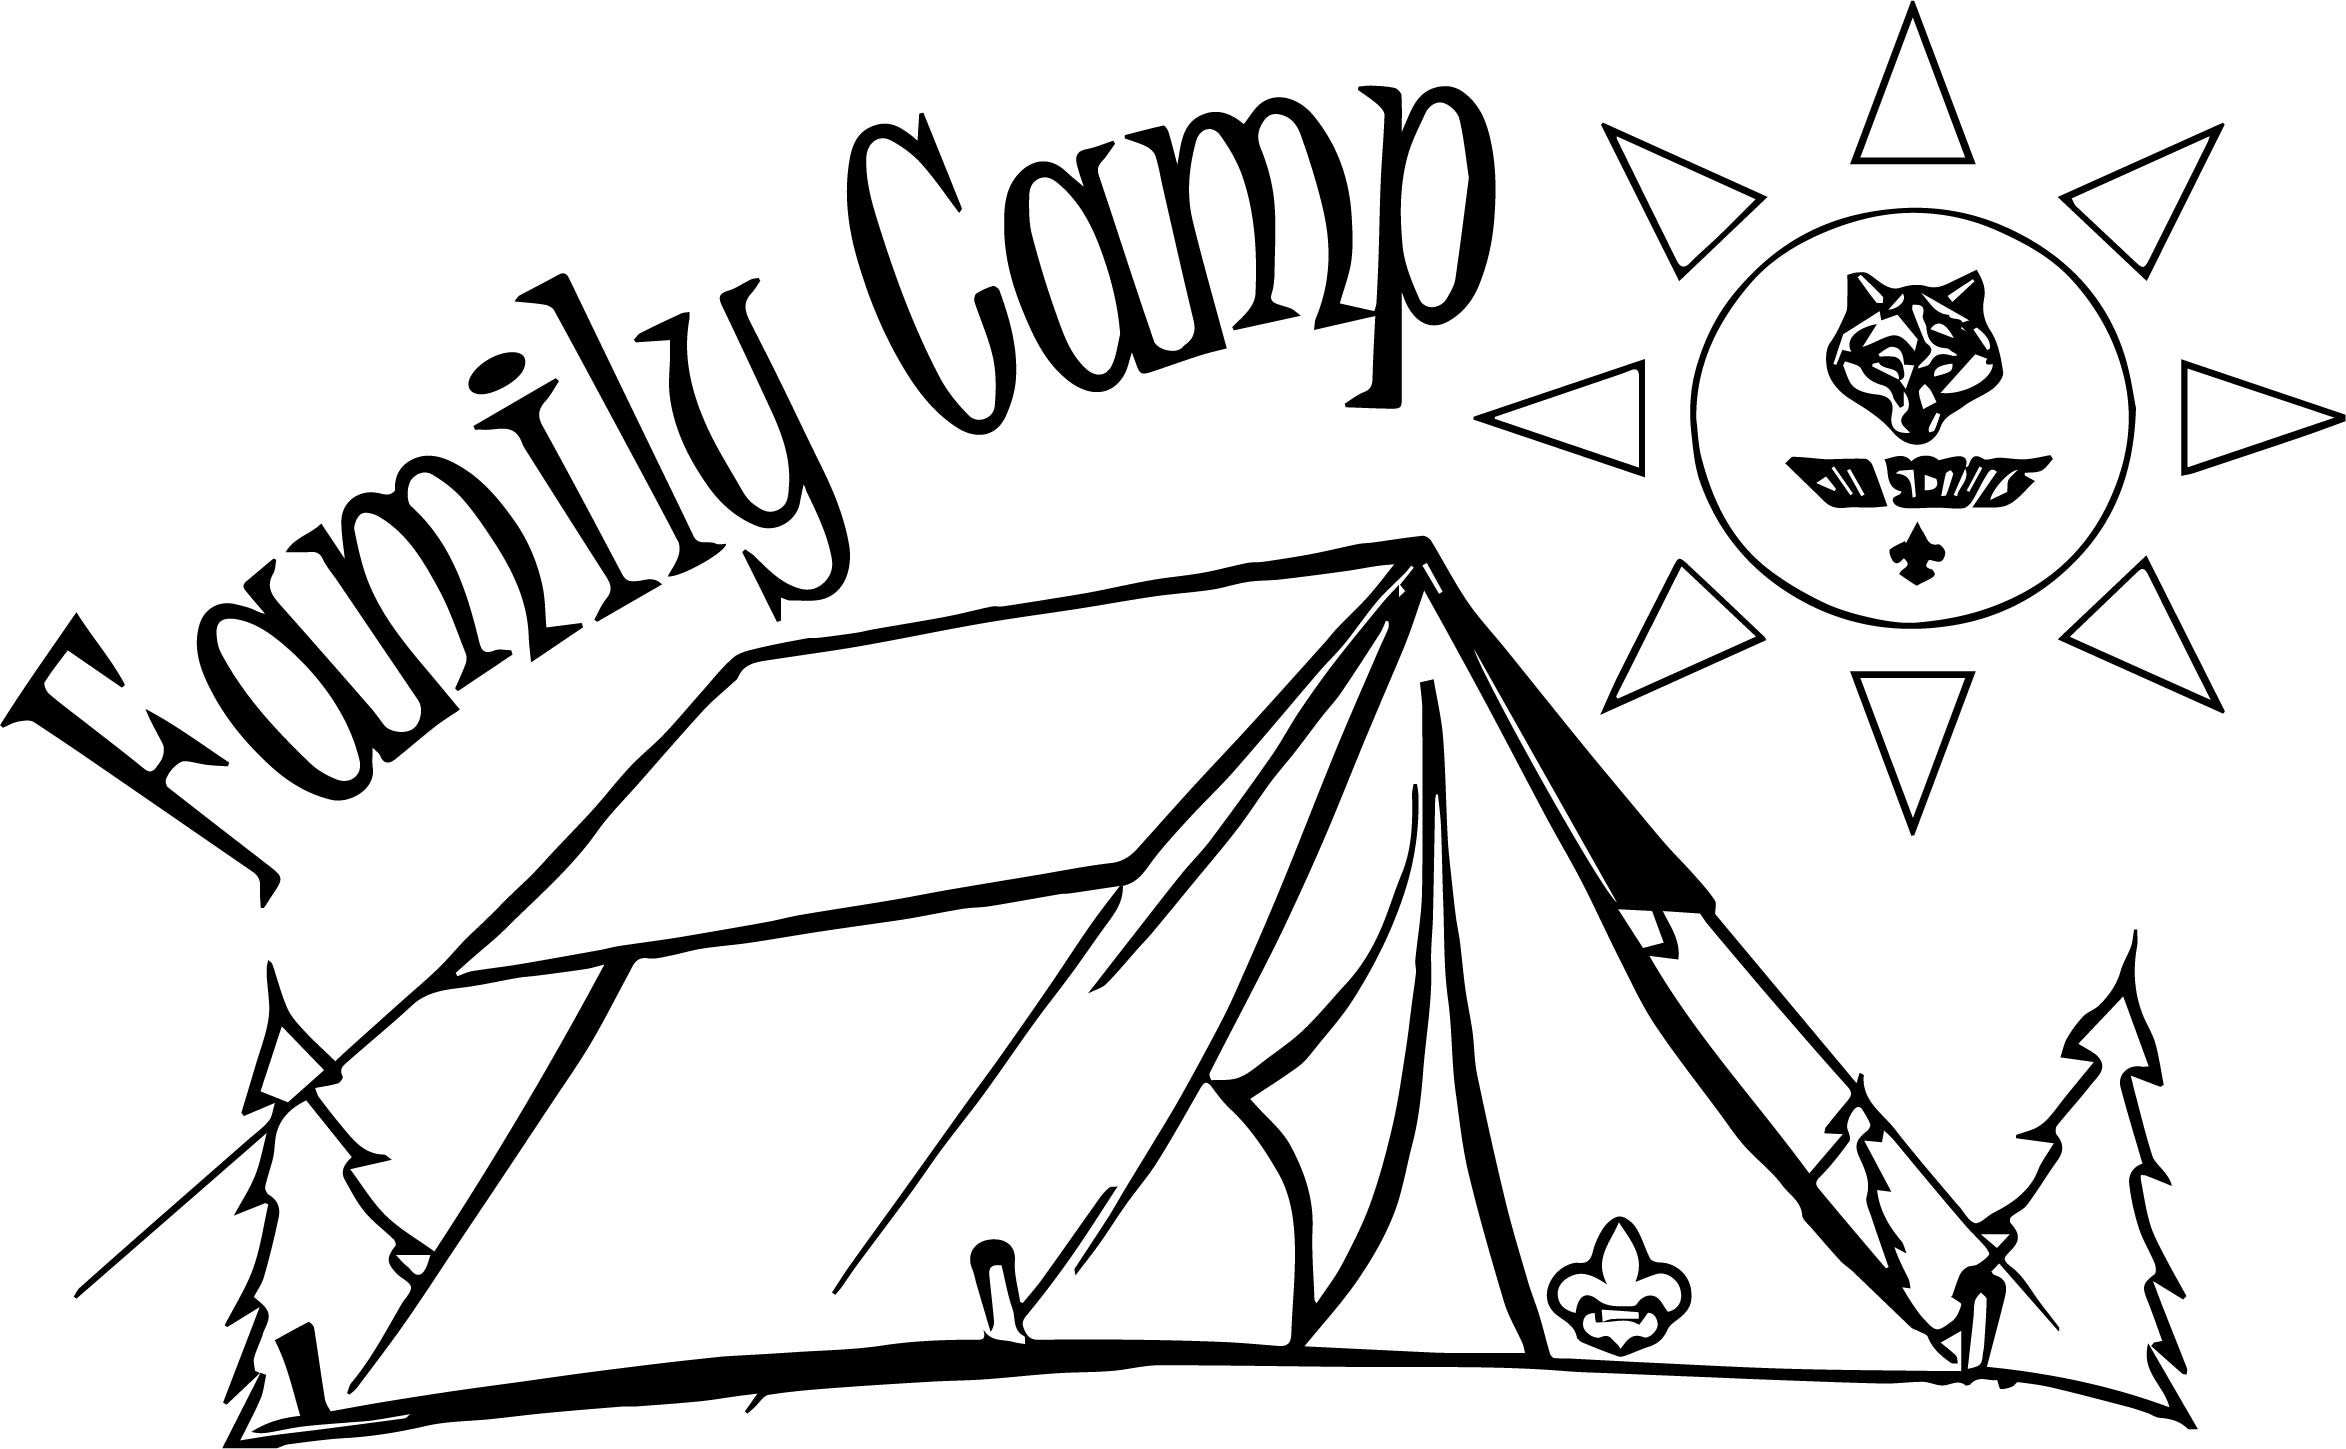 Cub family camp camping coloring page for Camp coloring pages